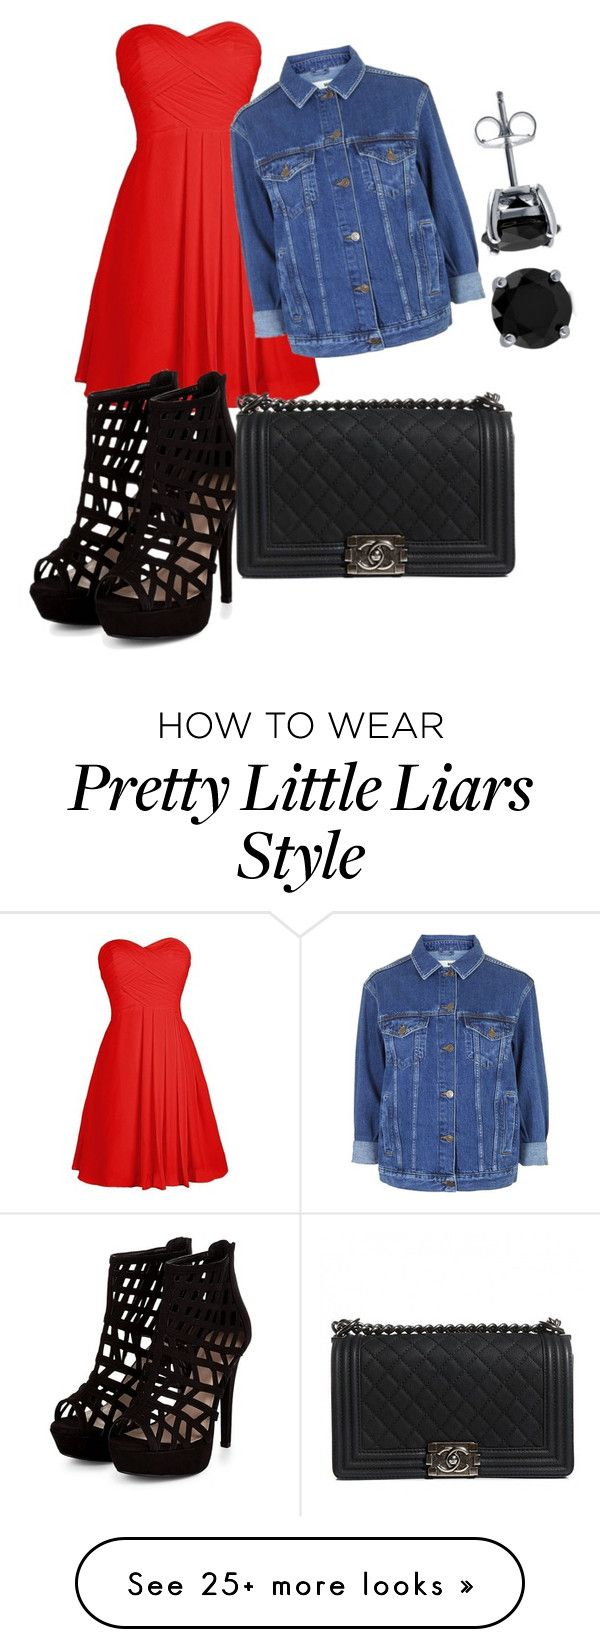 """Get the look for Alison DiLaurentis- pretty little liars"" by pretty-little-liars-style101 on Polyvore featuring Topshop, Chanel and BERRICLE"